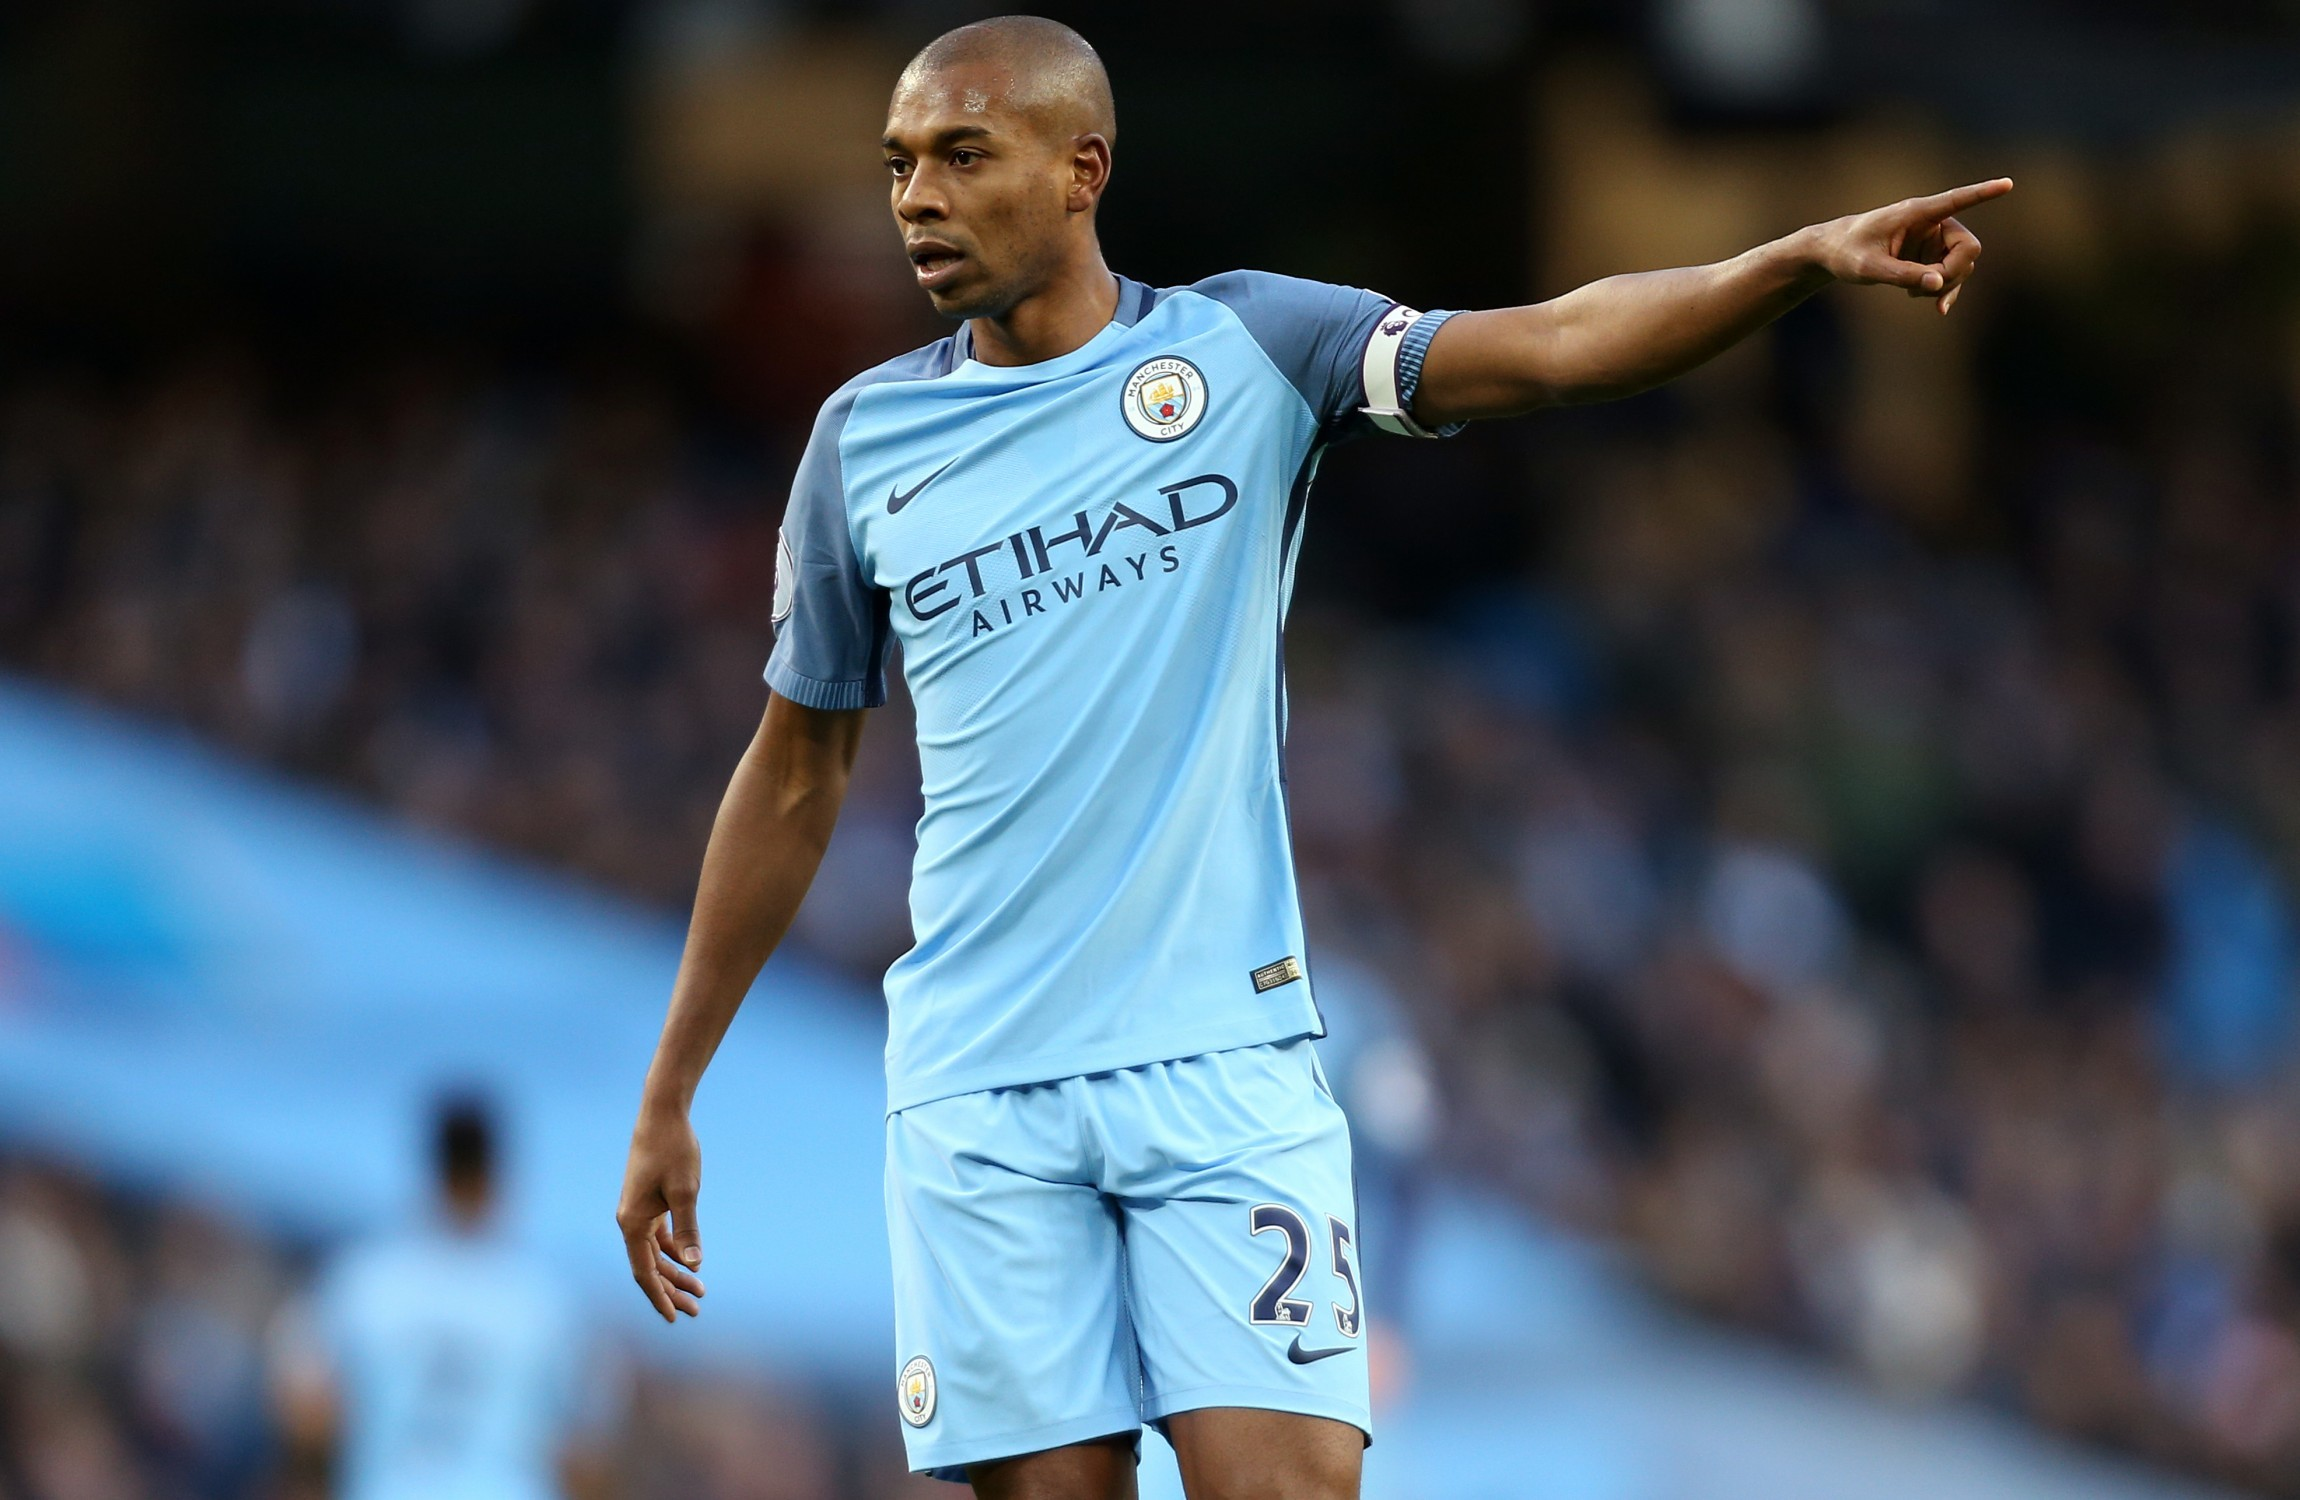 Manchester City s Fernandinho to miss next four games after ban upheld